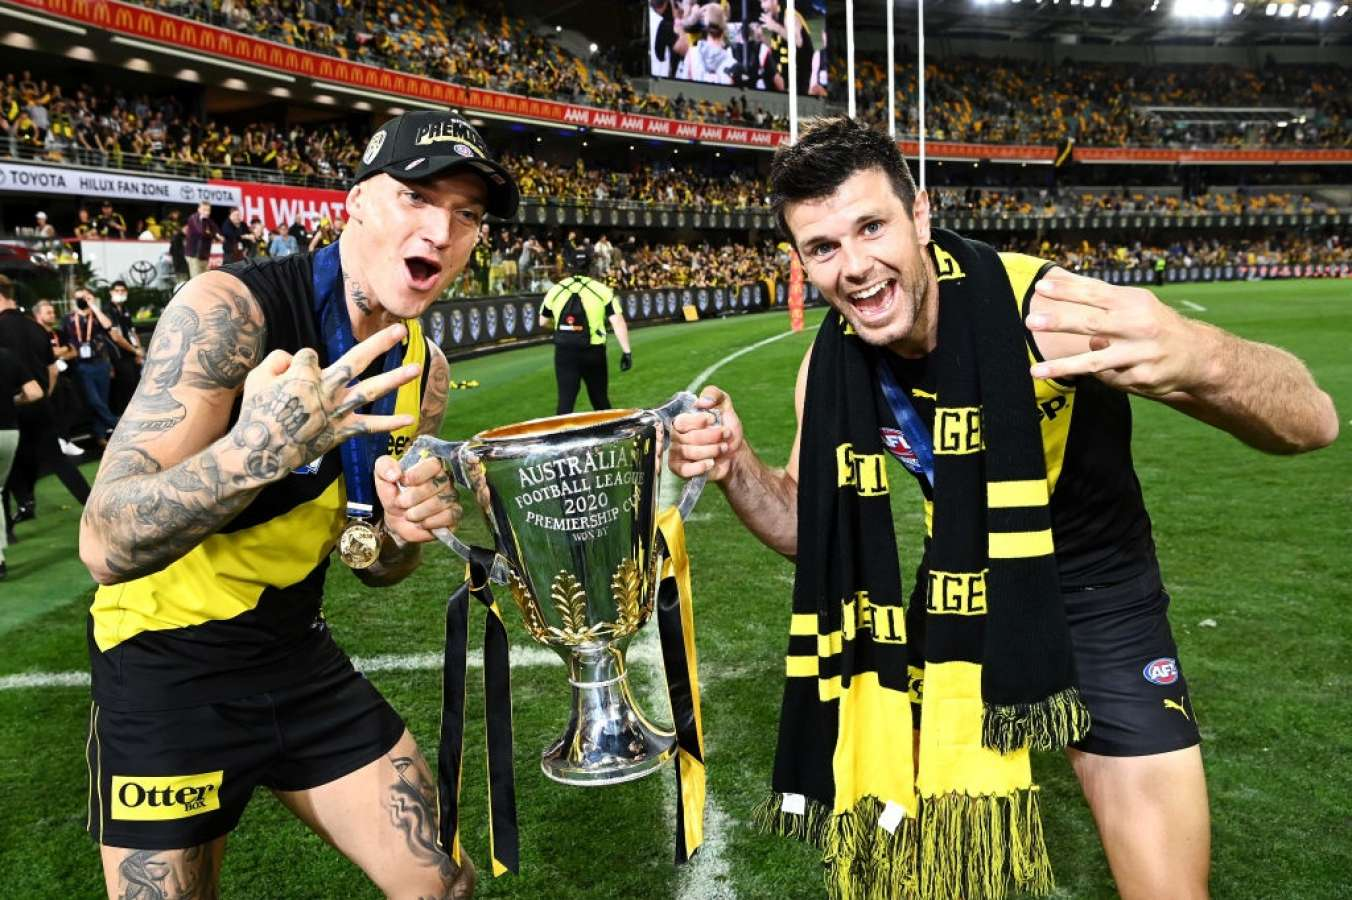 afl betting round 22 2021 election